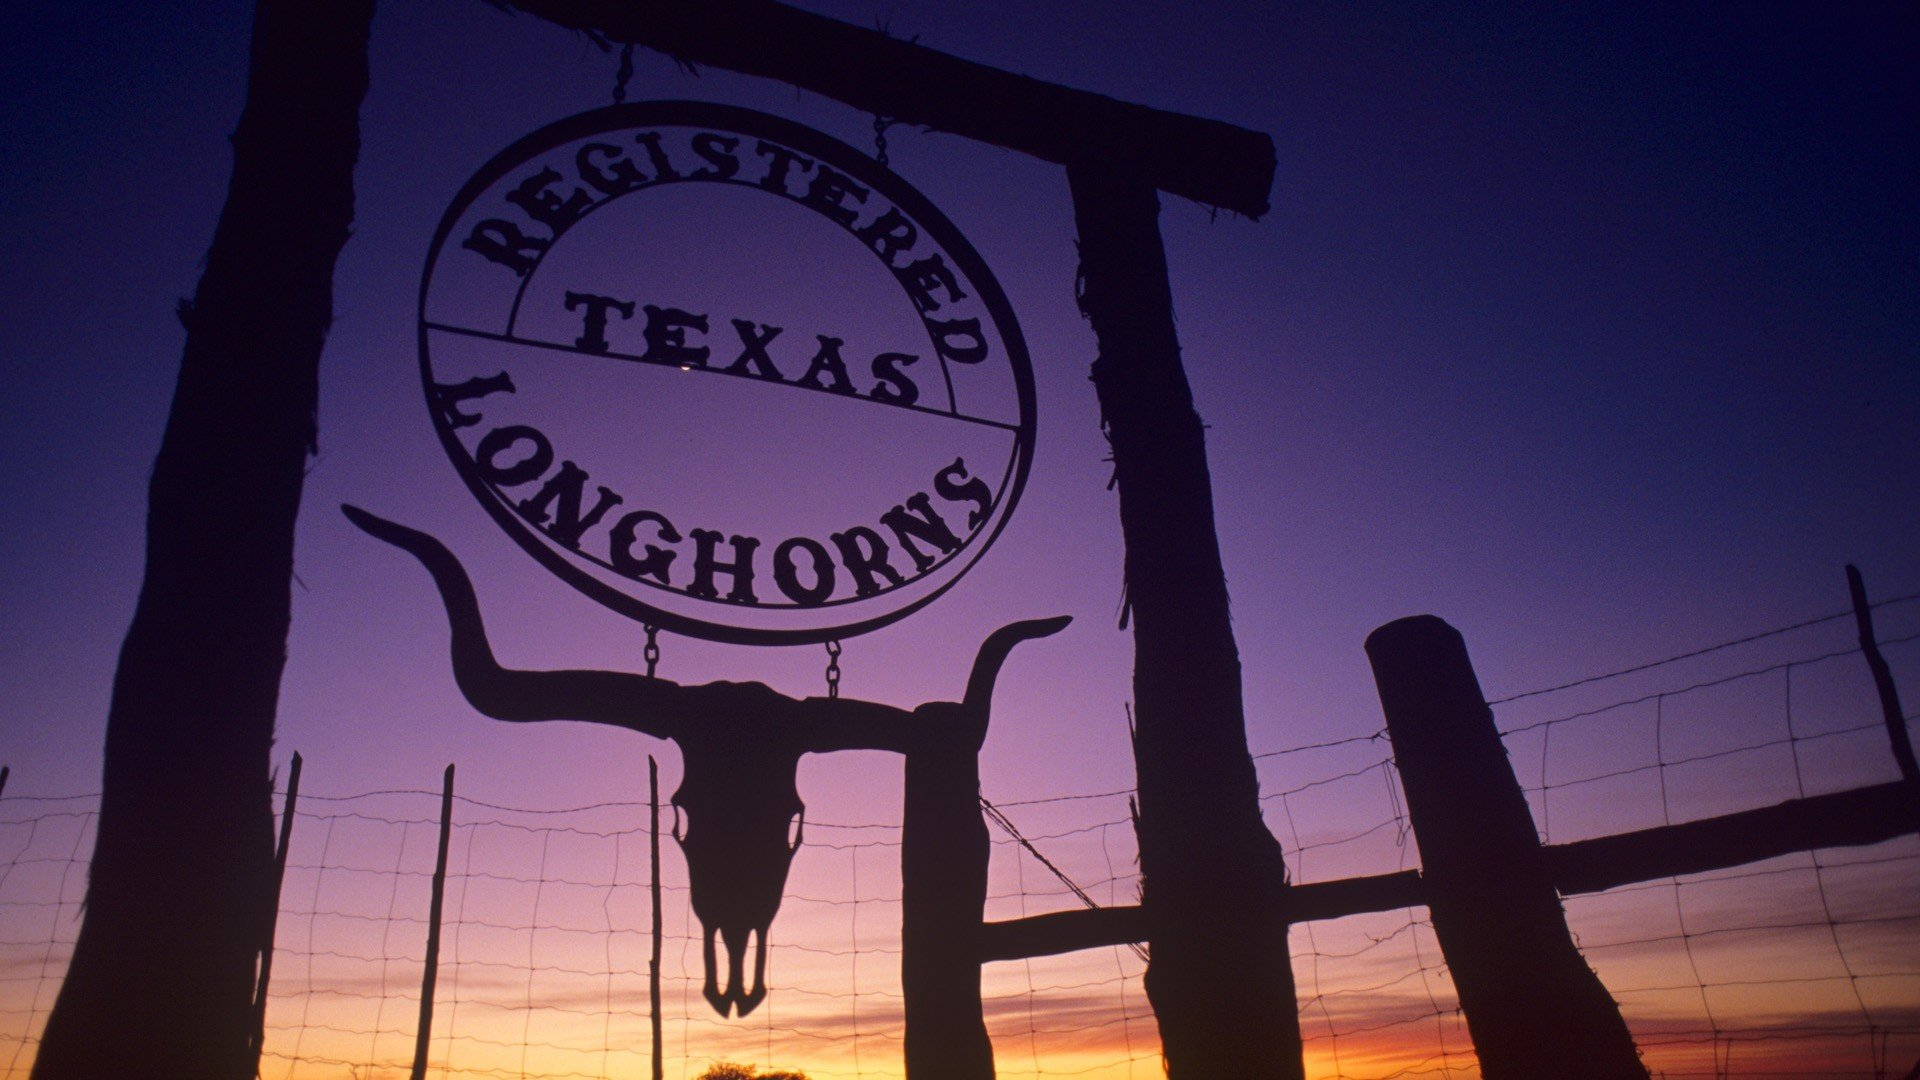 Night Texas Backgrounds HD Wallpapers High Definition Amazing Cool 1920x1080